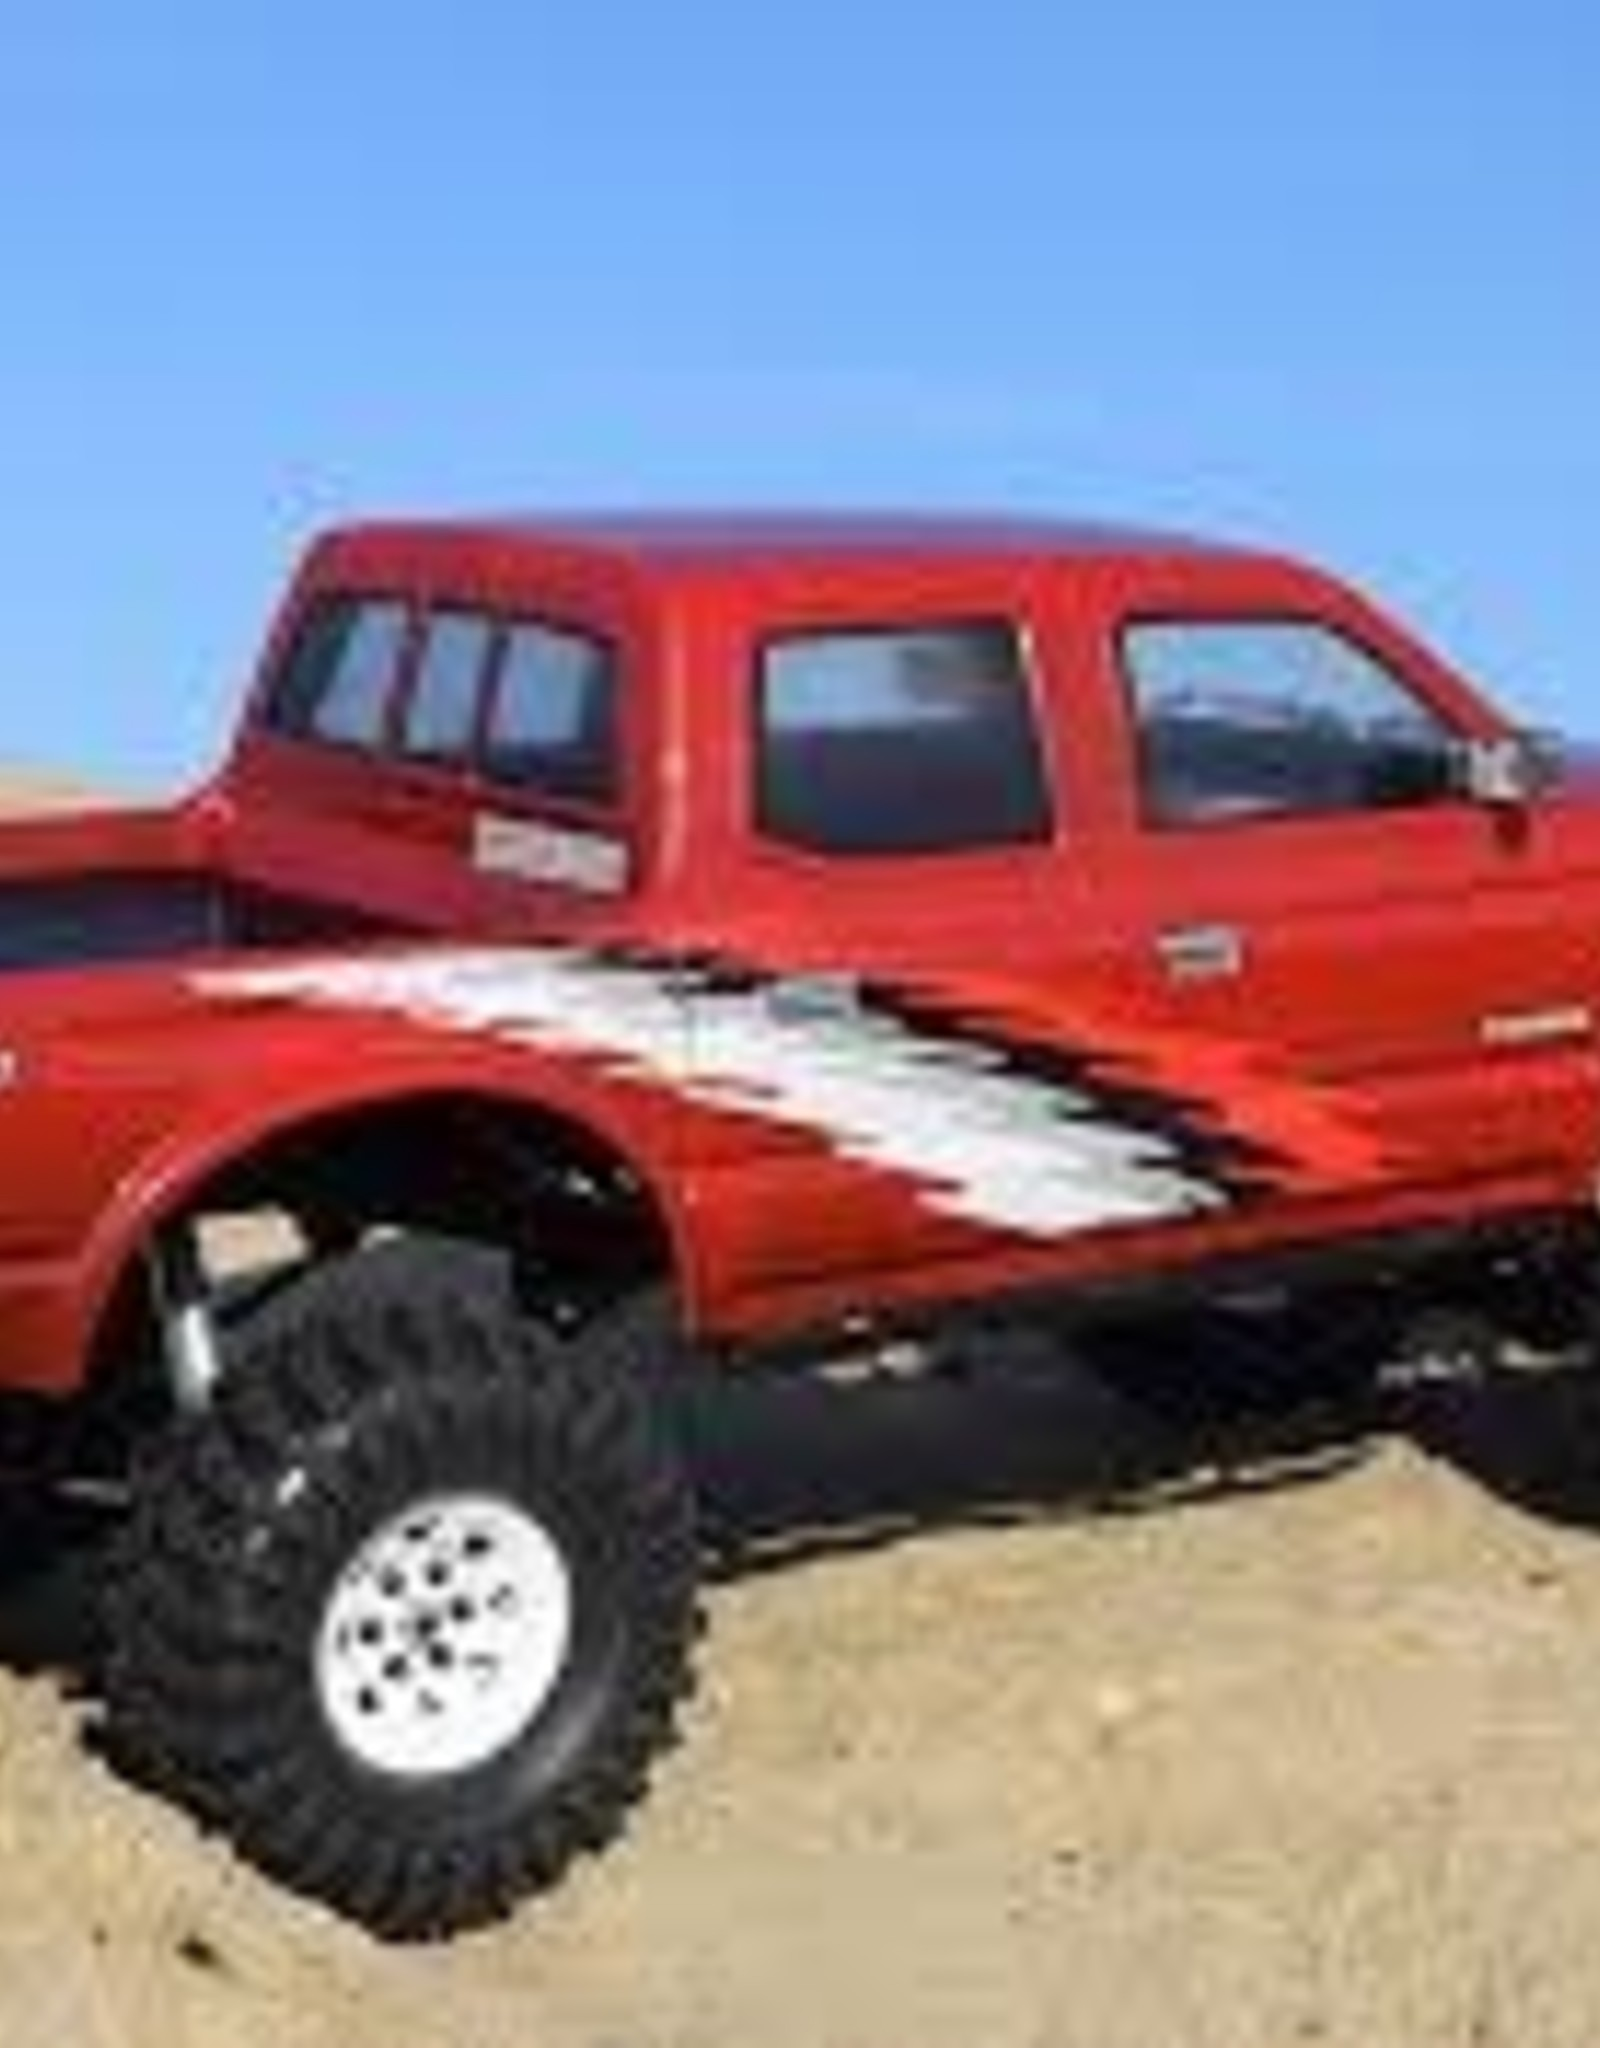 RC4WD RC4WD RC 4WD Z-B0169 2001 Toyota Tacoma 4 Door Body for Tf2 Lwb 313mm/12.3